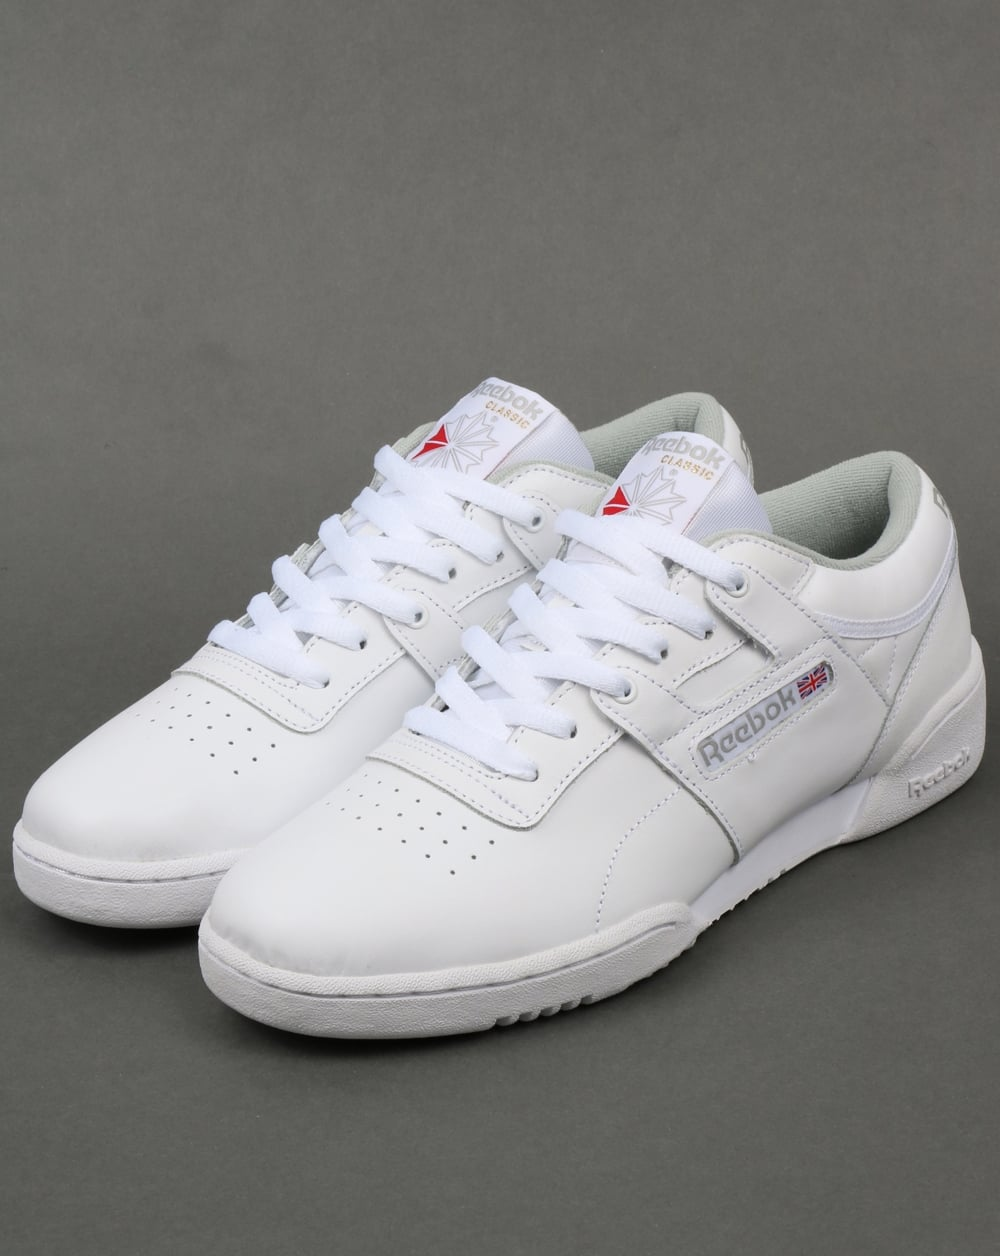 cf4394e7c23 Reebok Workout Low Trainers White Grey